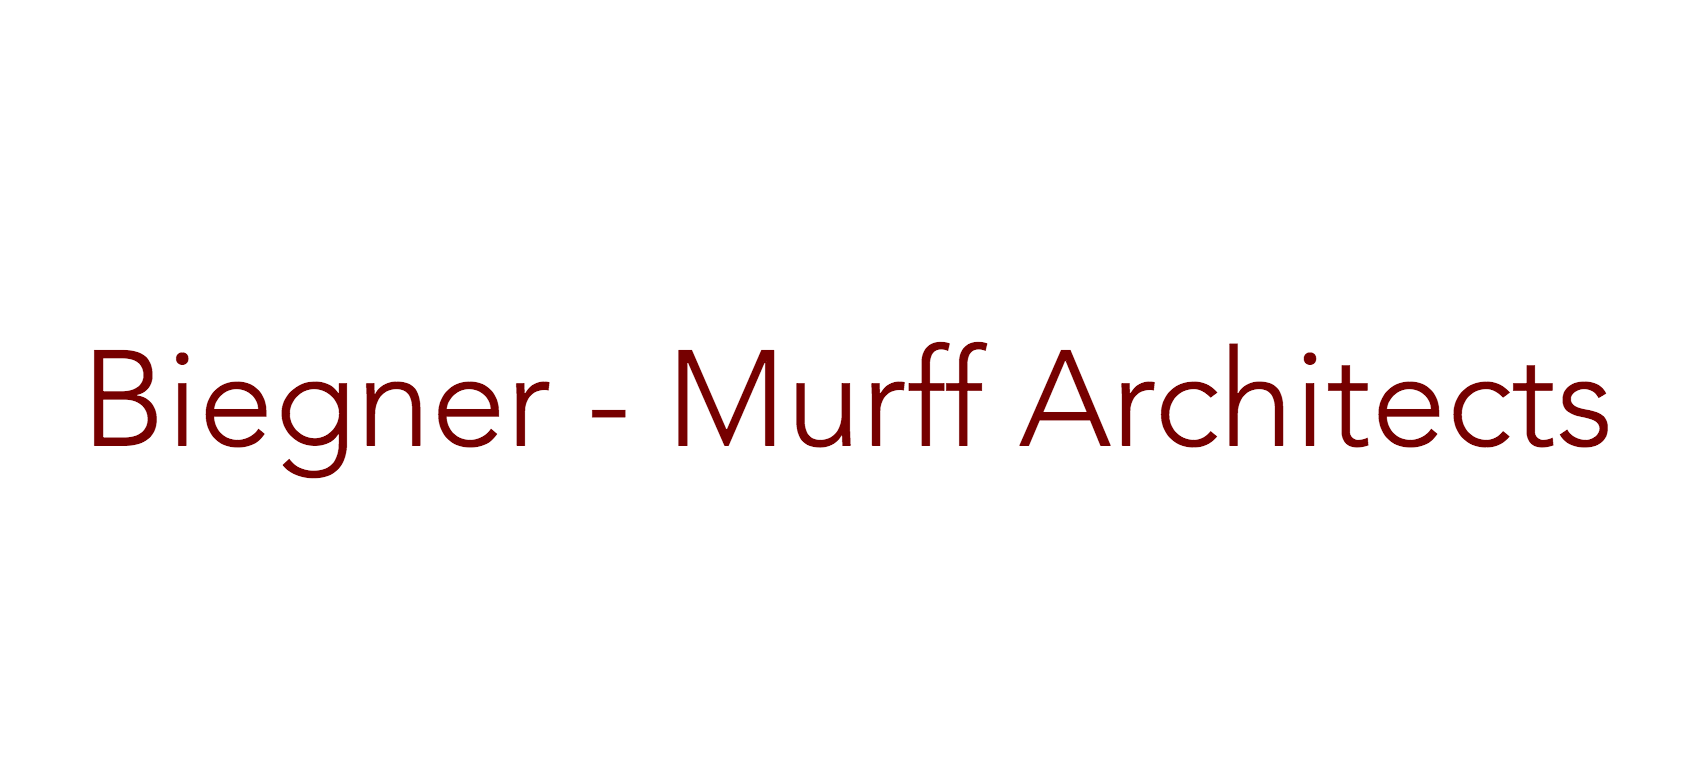 Biegner-Murff Architects